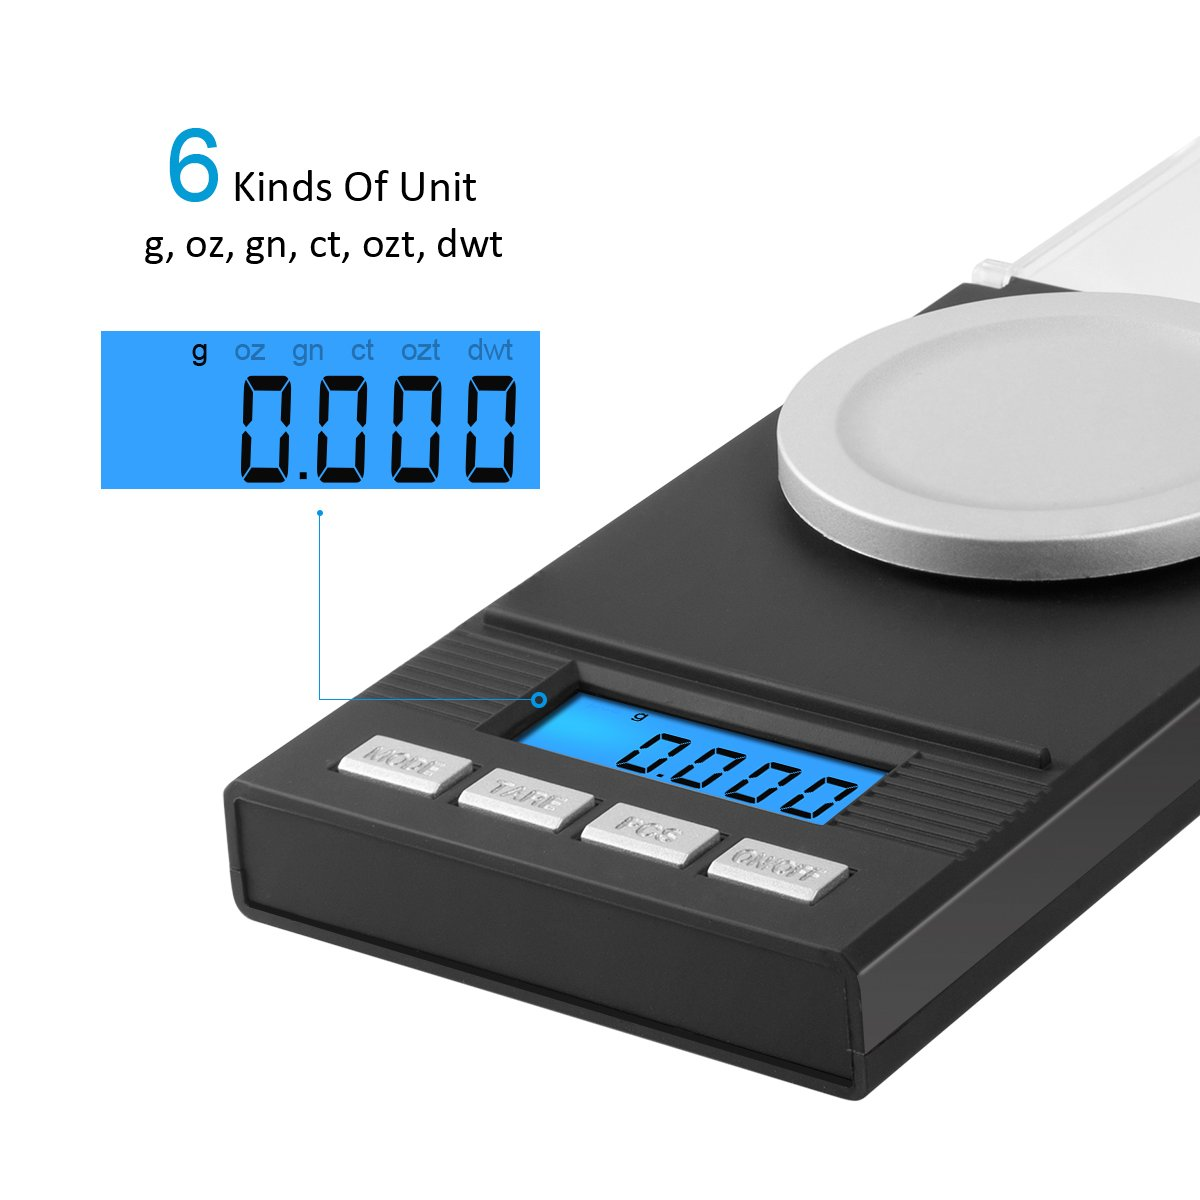 AMIR Digital Milligram Scale, Mini Precise Jewelry Scale, 50g/ 0.001g Pro Lab Scale with Calibration Weights Tweezers and Weighing Pans, 6 Units, Tare & PCS Function, Auto Off, for Gems, Diamond, etc by AMIR (Image #3)